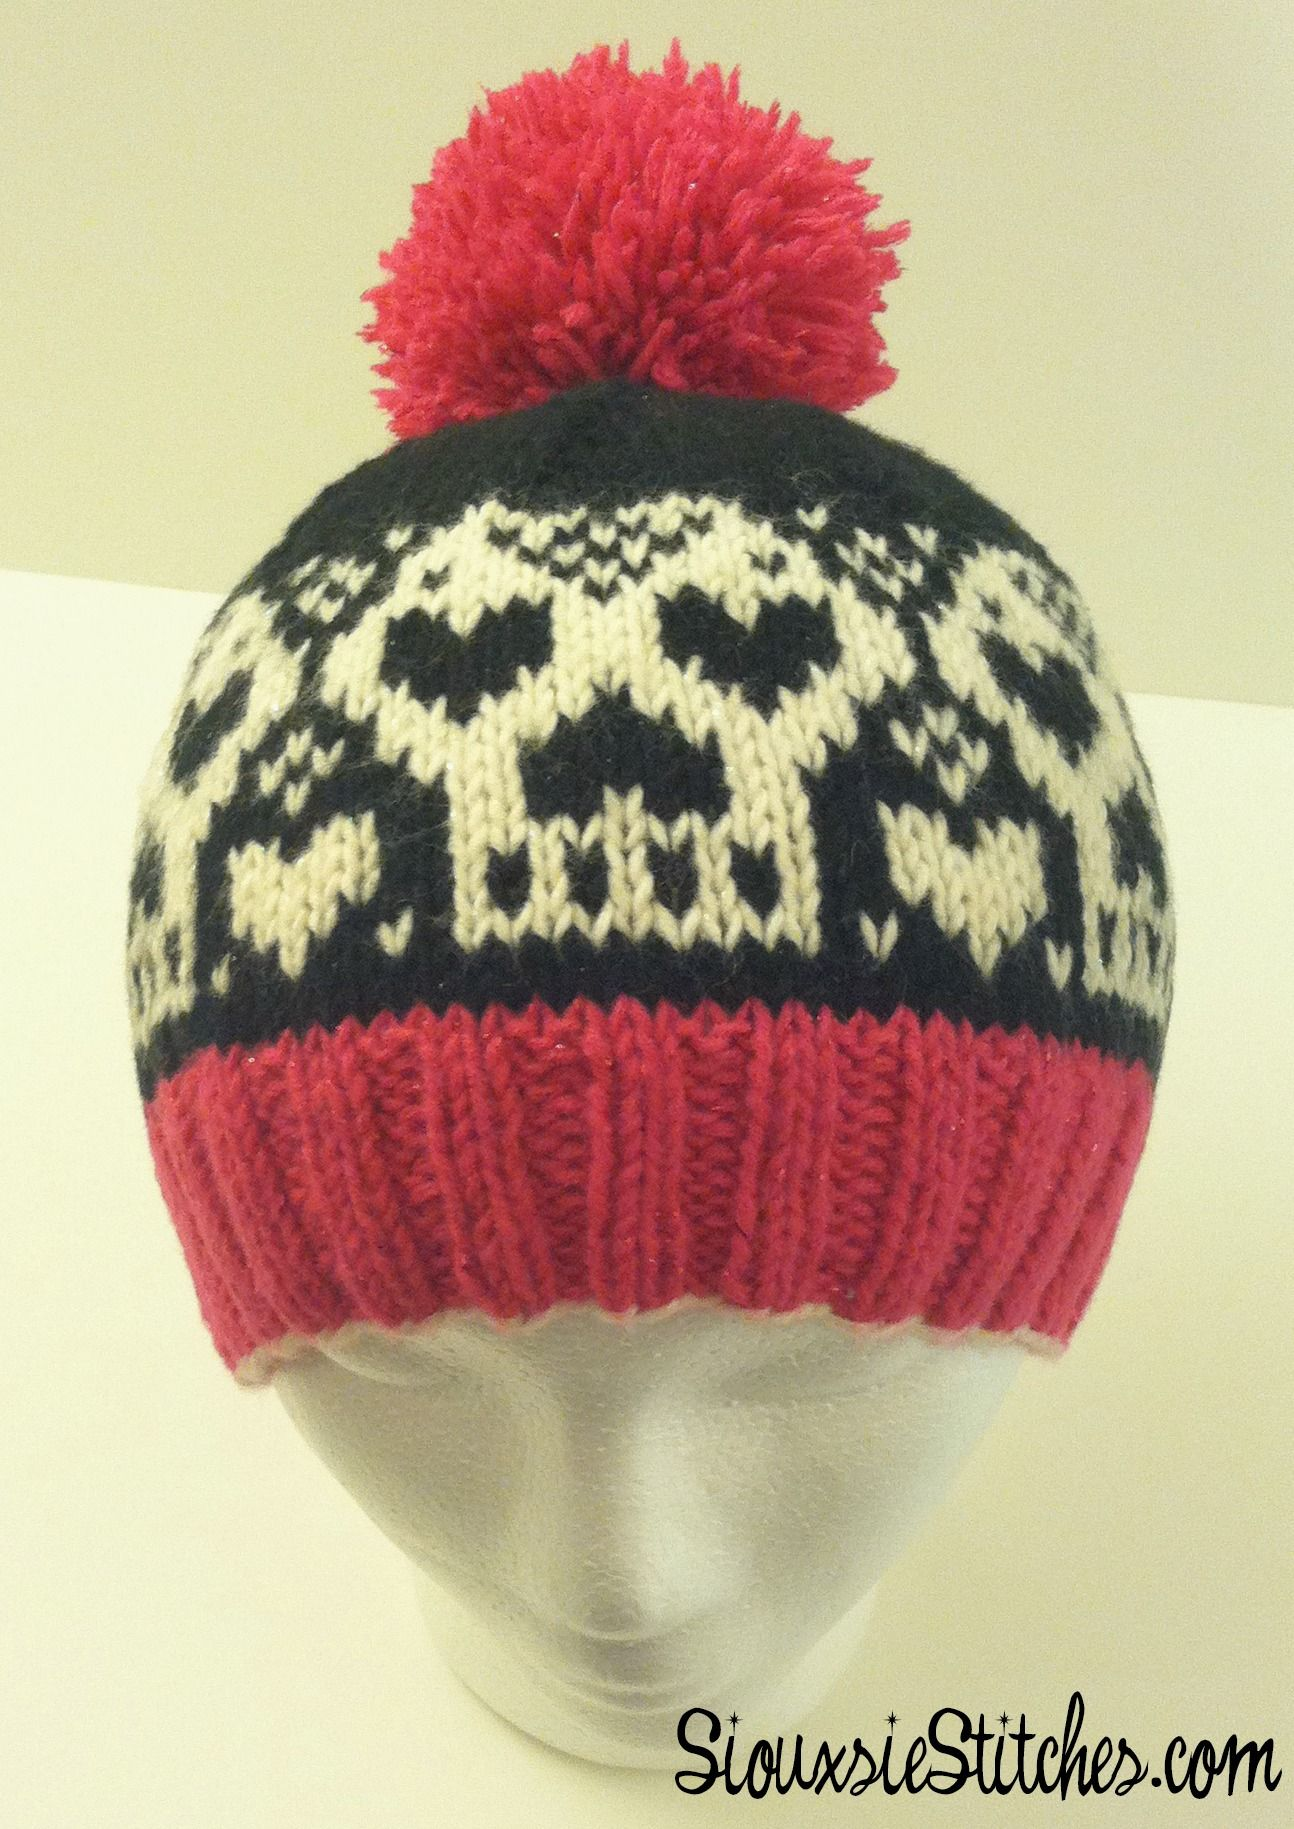 79a765e5a The Heartskull Hat - a free knitting pattern by SiouxsieStitches.com ...